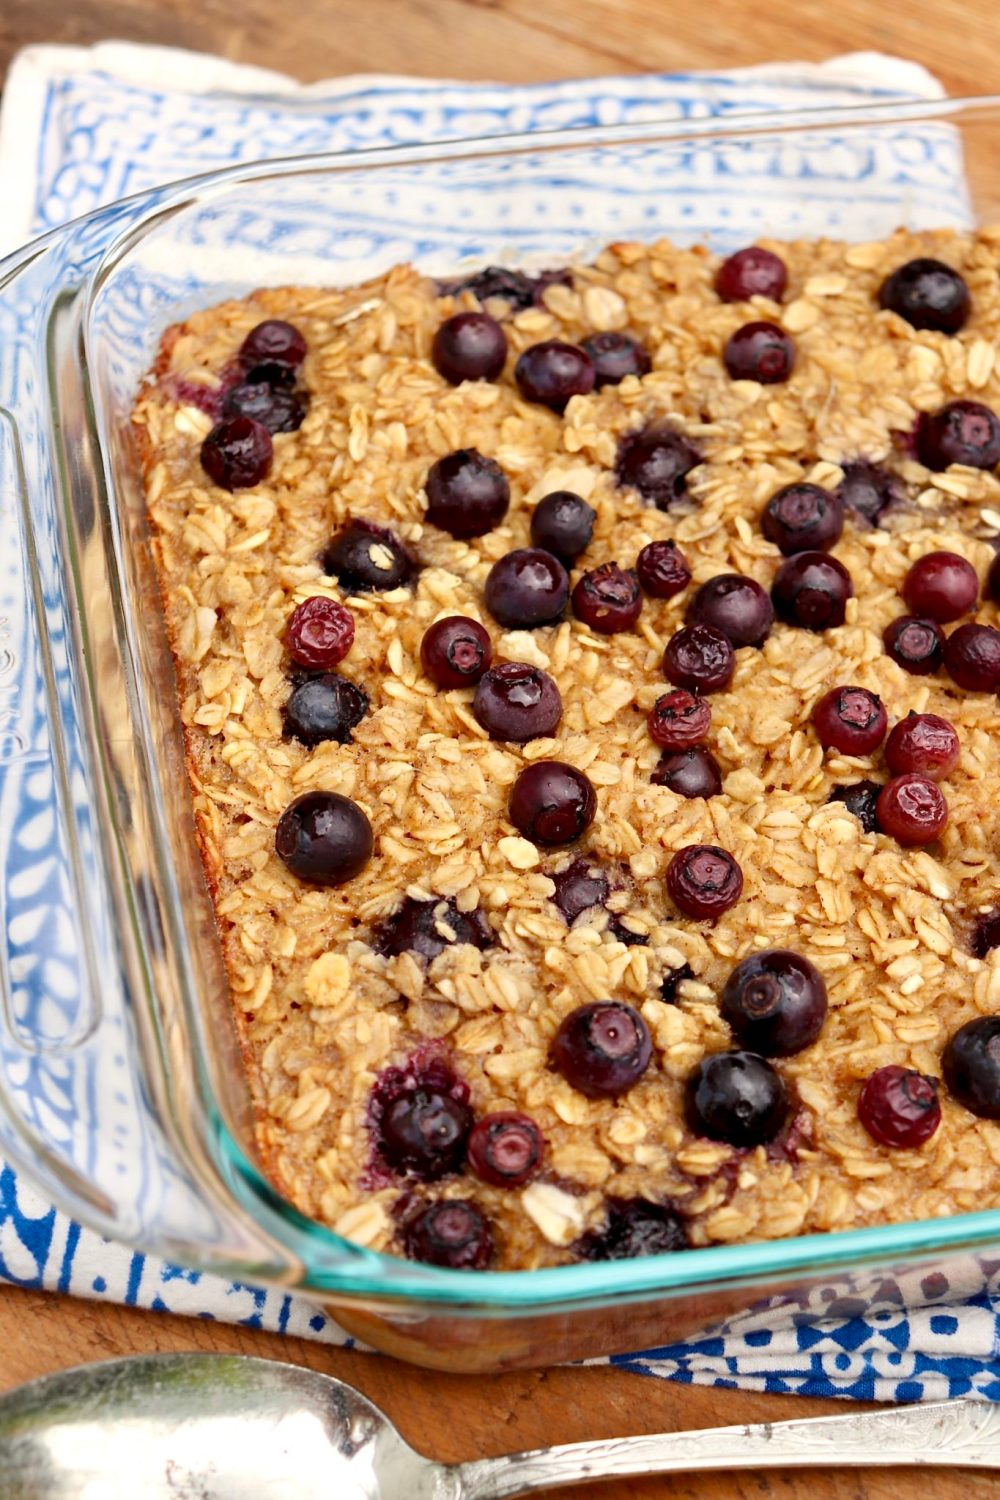 With just 5.3 grams of added sugar per serving, this healthy, wholegrain breakfast relies on the natural sweetness of whole fruit to deliver great taste that we can feel good about. For added convenience, the recipe offers choices!